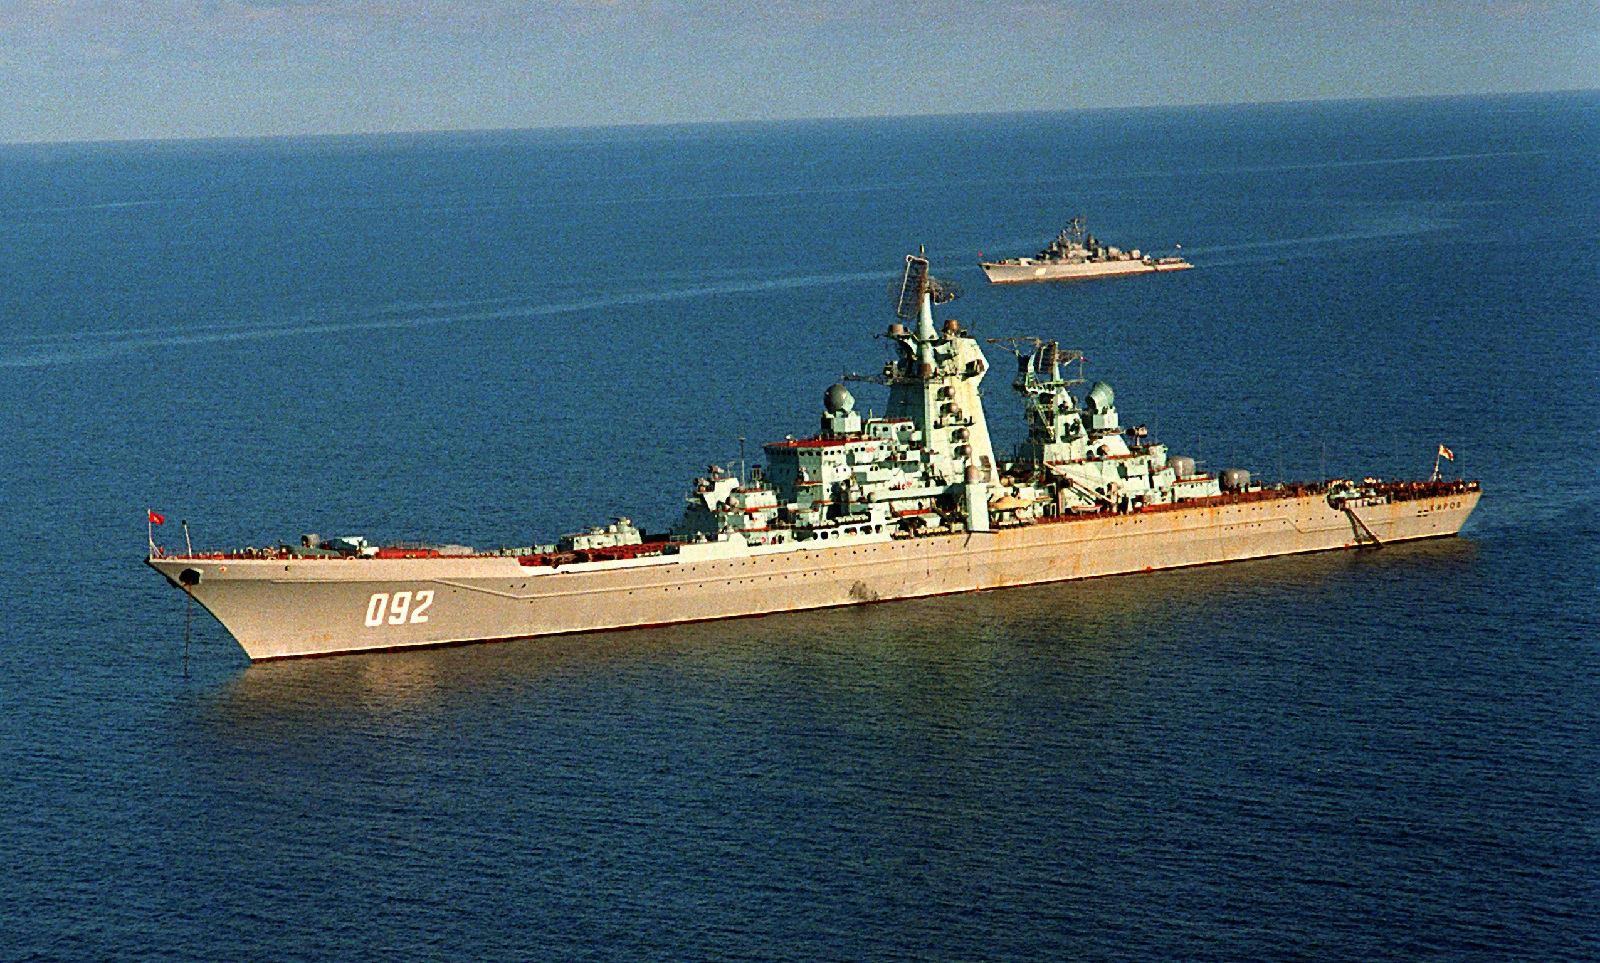 The Russian Navy Is Dismantling Two Massive Nuclear Battlecruisers. Here's Why.